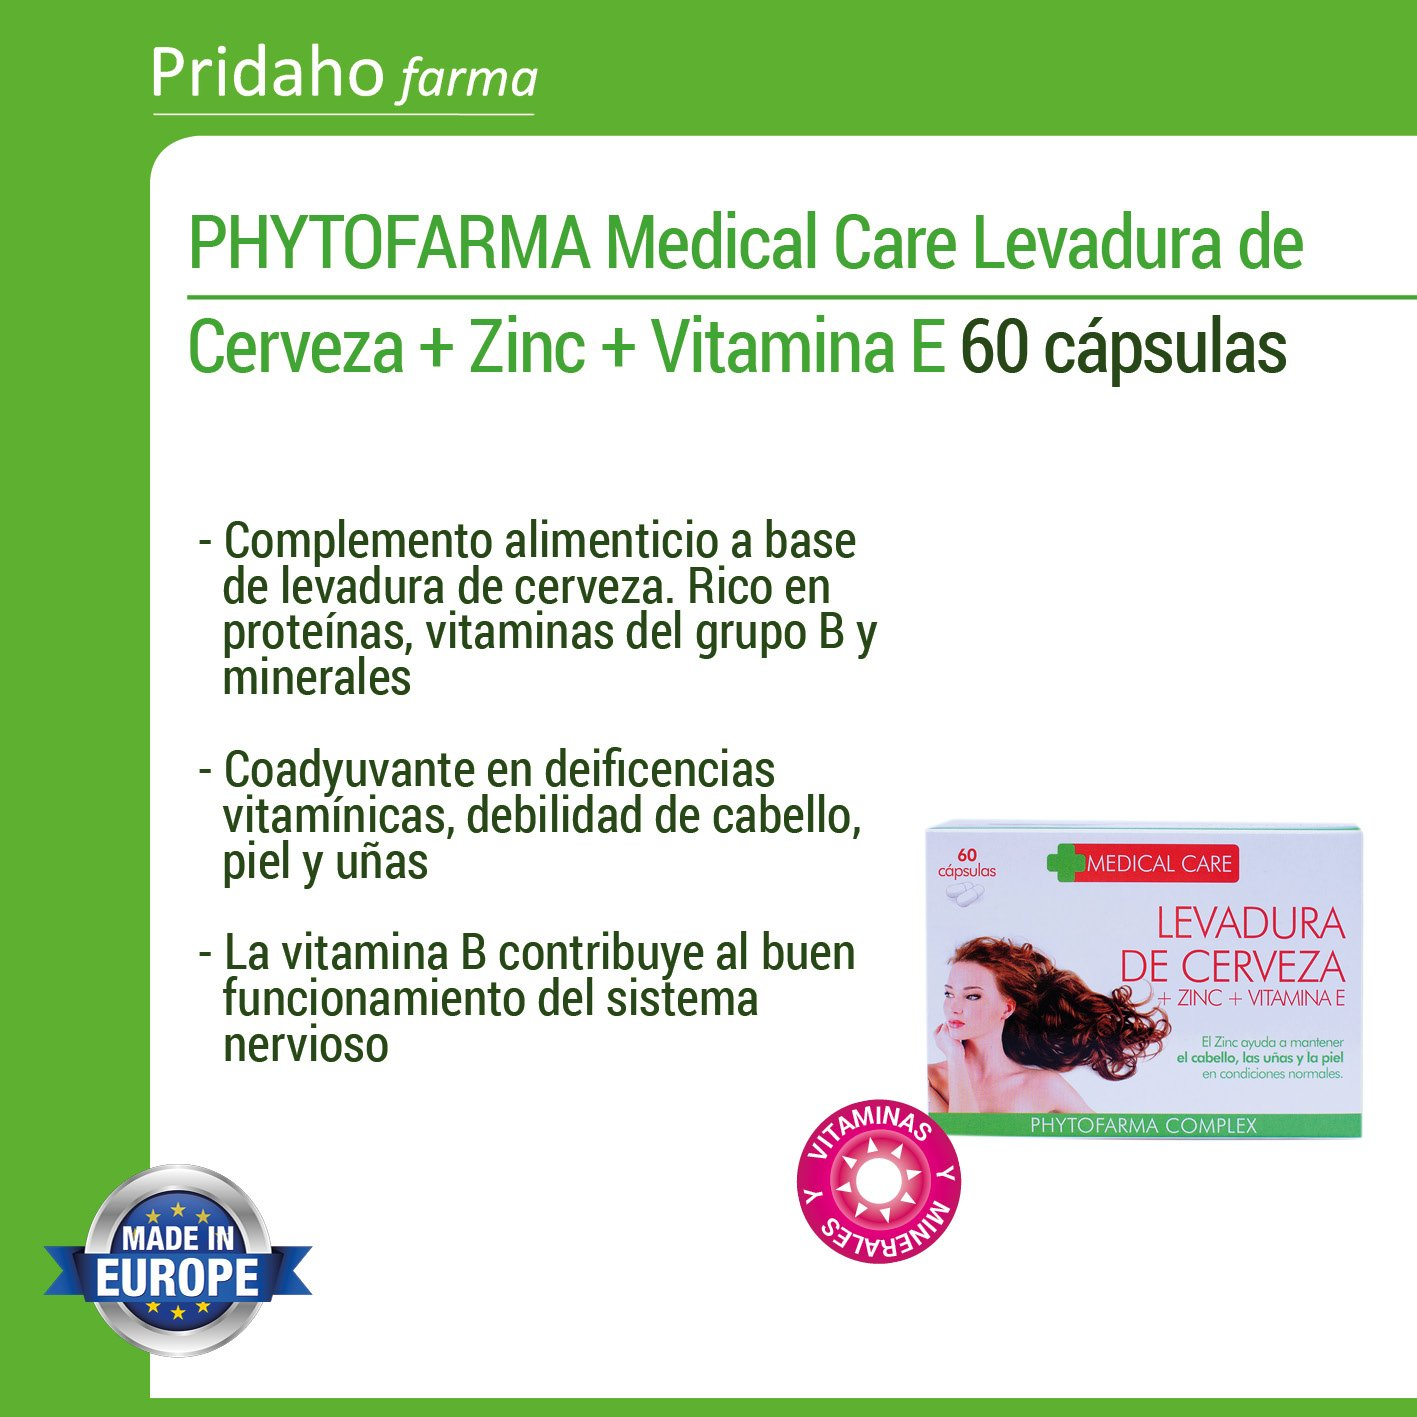 PHYTOFARMA MEDICAL CARE Levadura de Cerveza + Zinc + Vitamina E 60 cápsulas: Amazon.es: Belleza